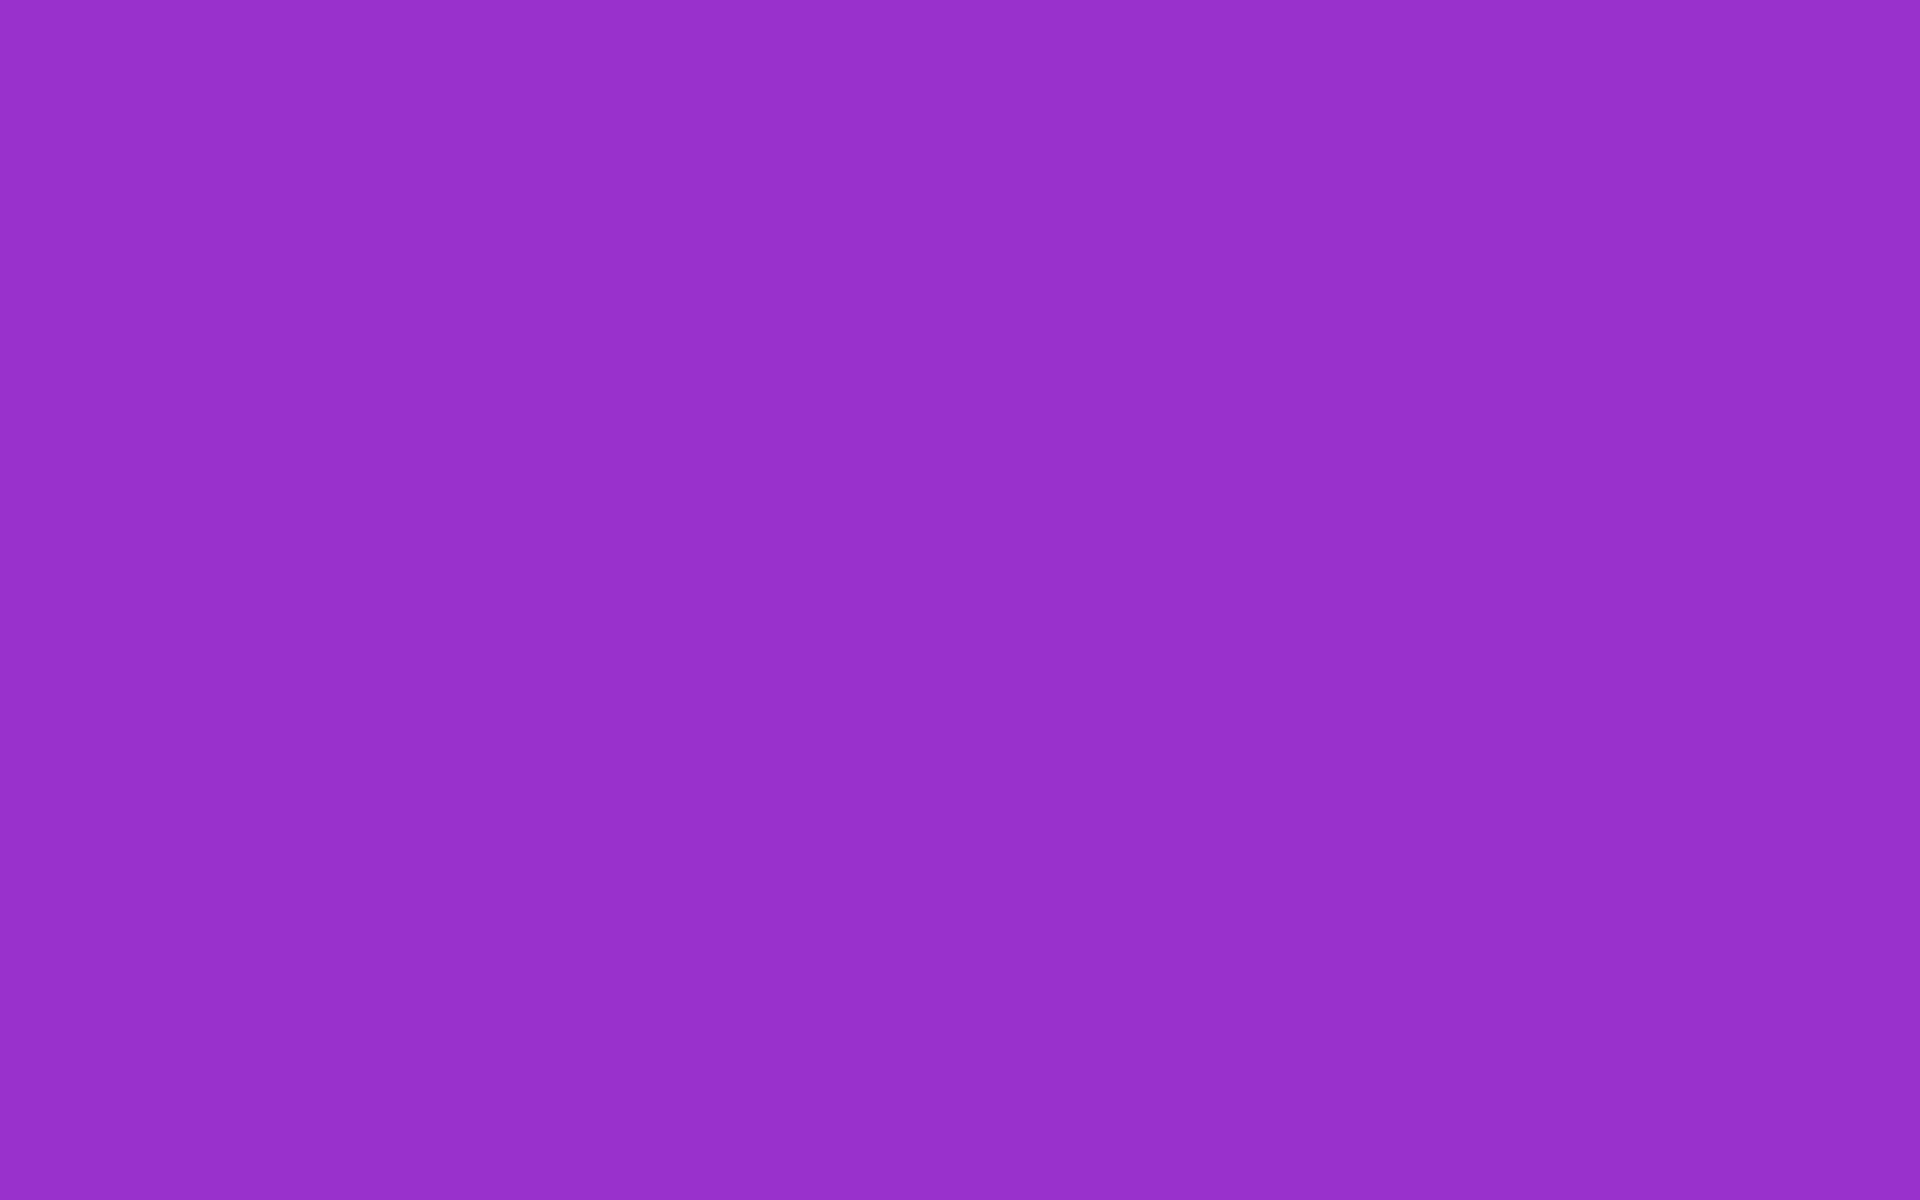 1920x1200 Dark Orchid Solid Color Background